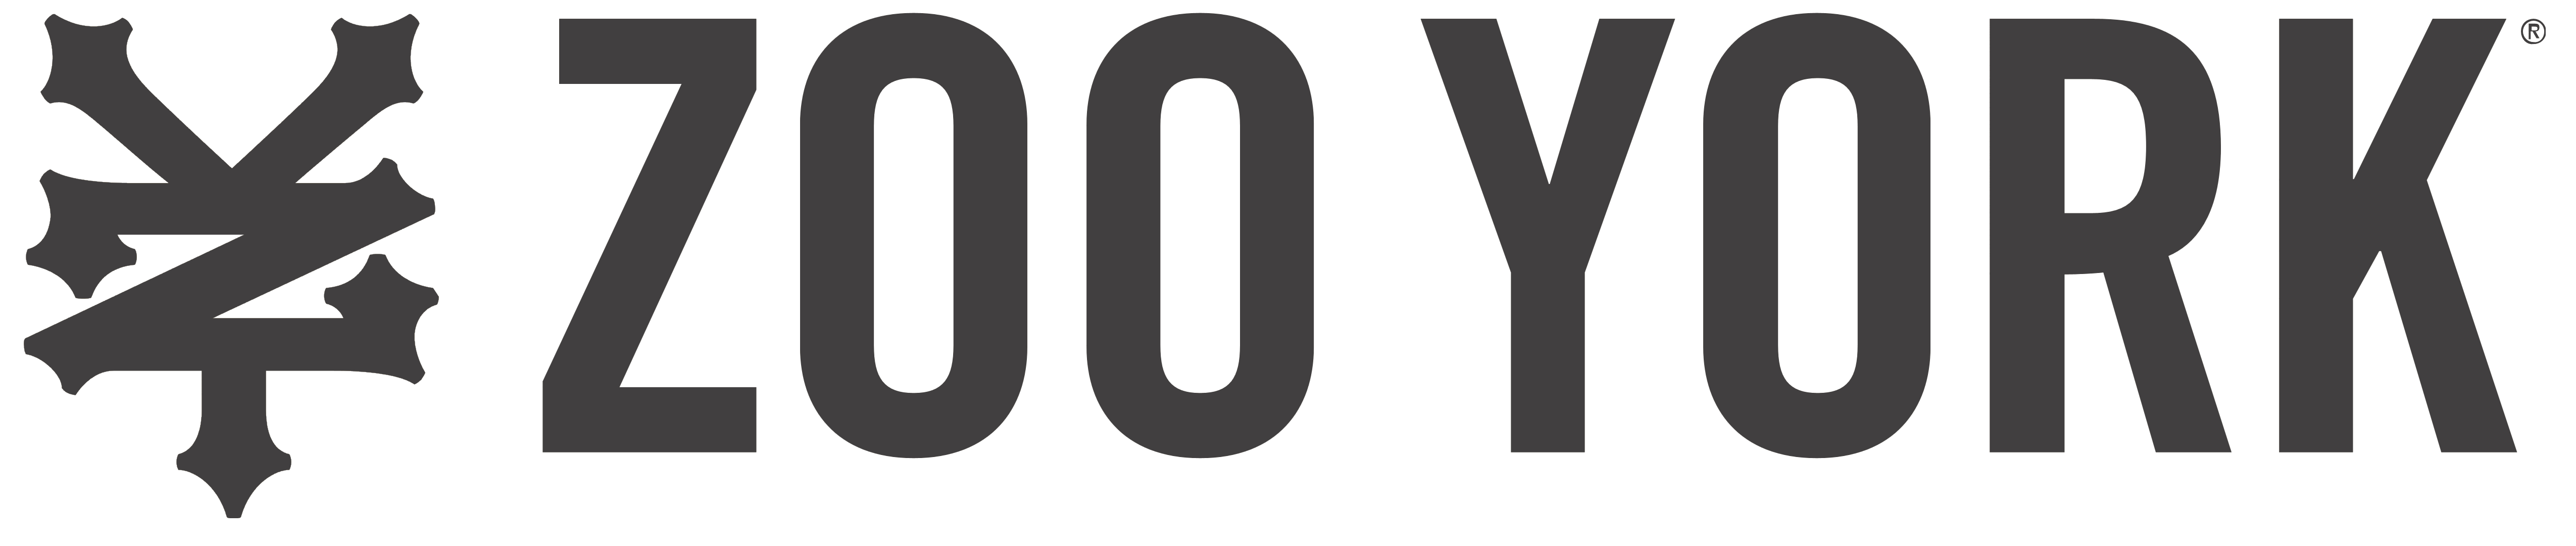 zoo york � logos download